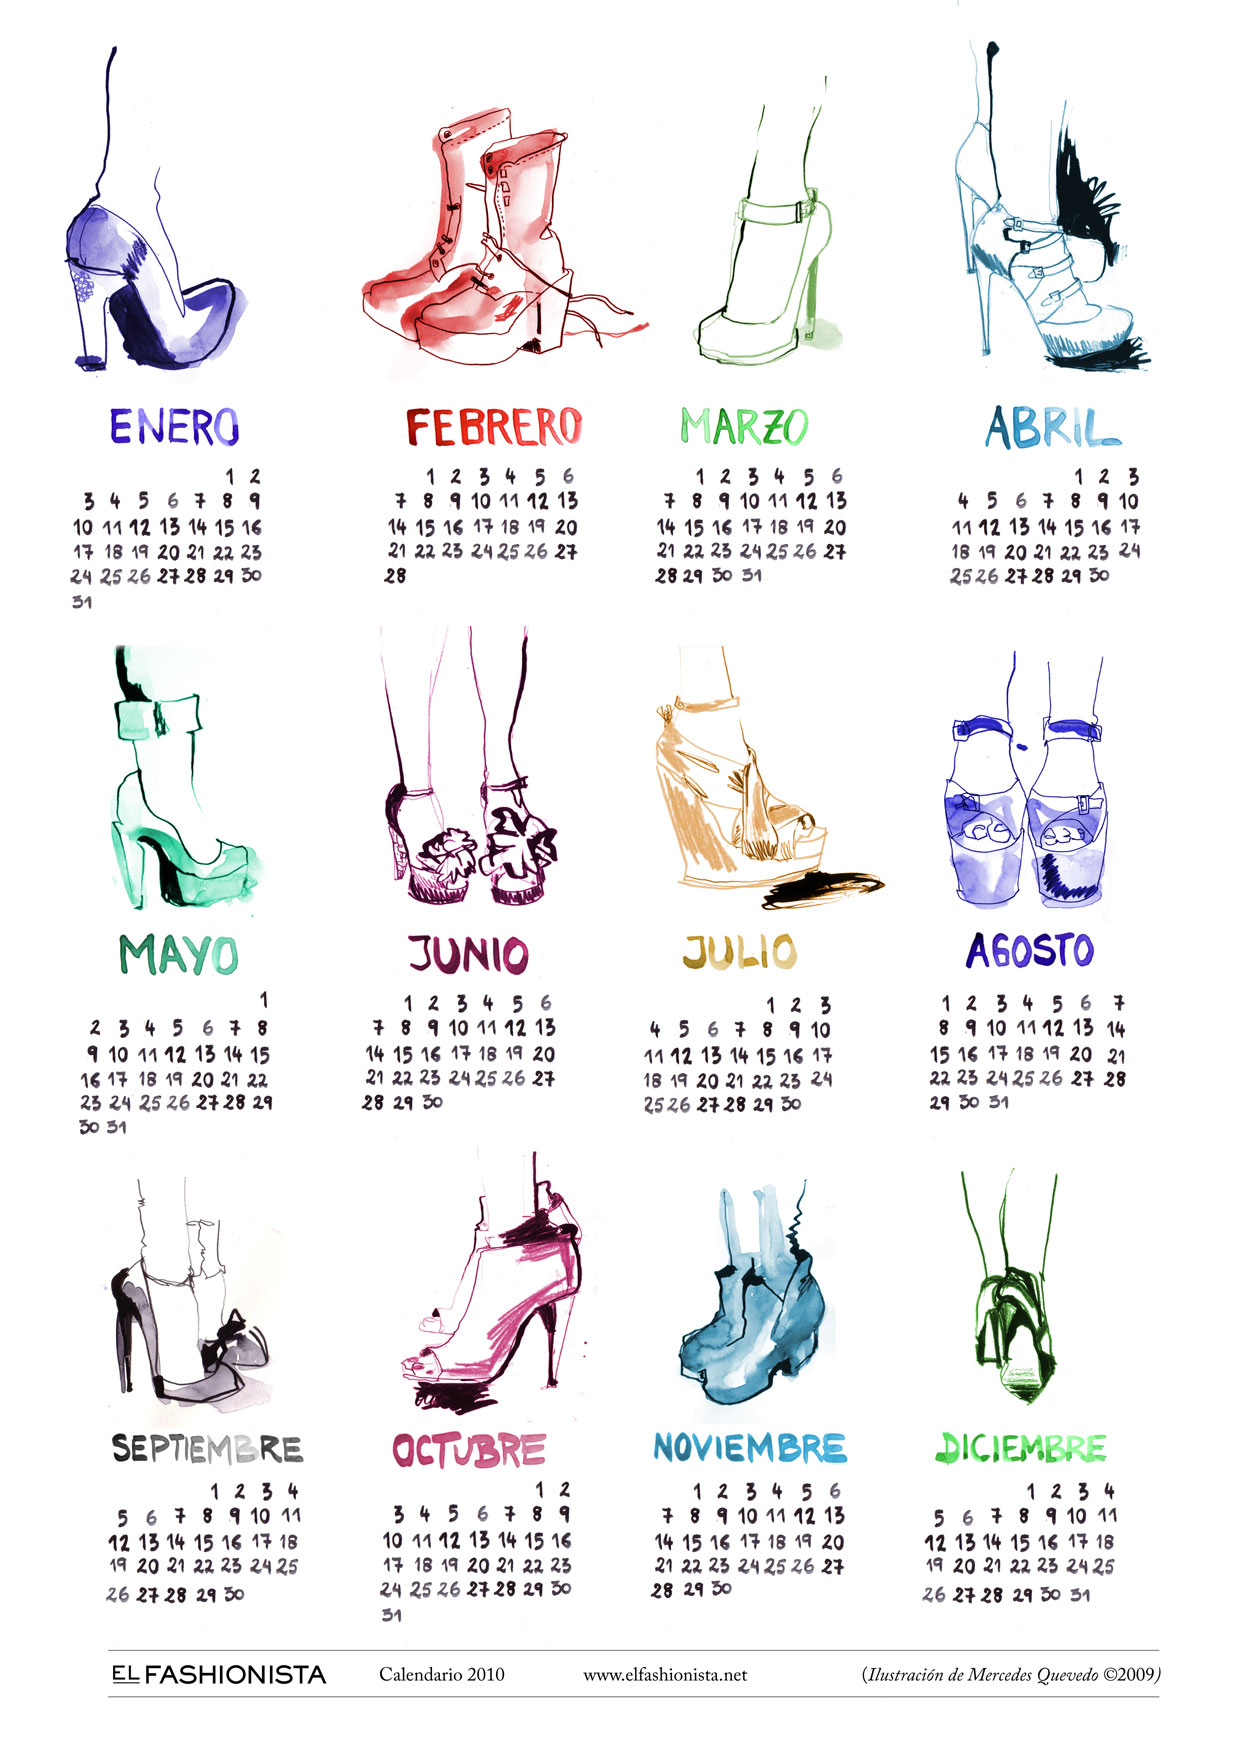 Calendario 2010 by elfashionista.net